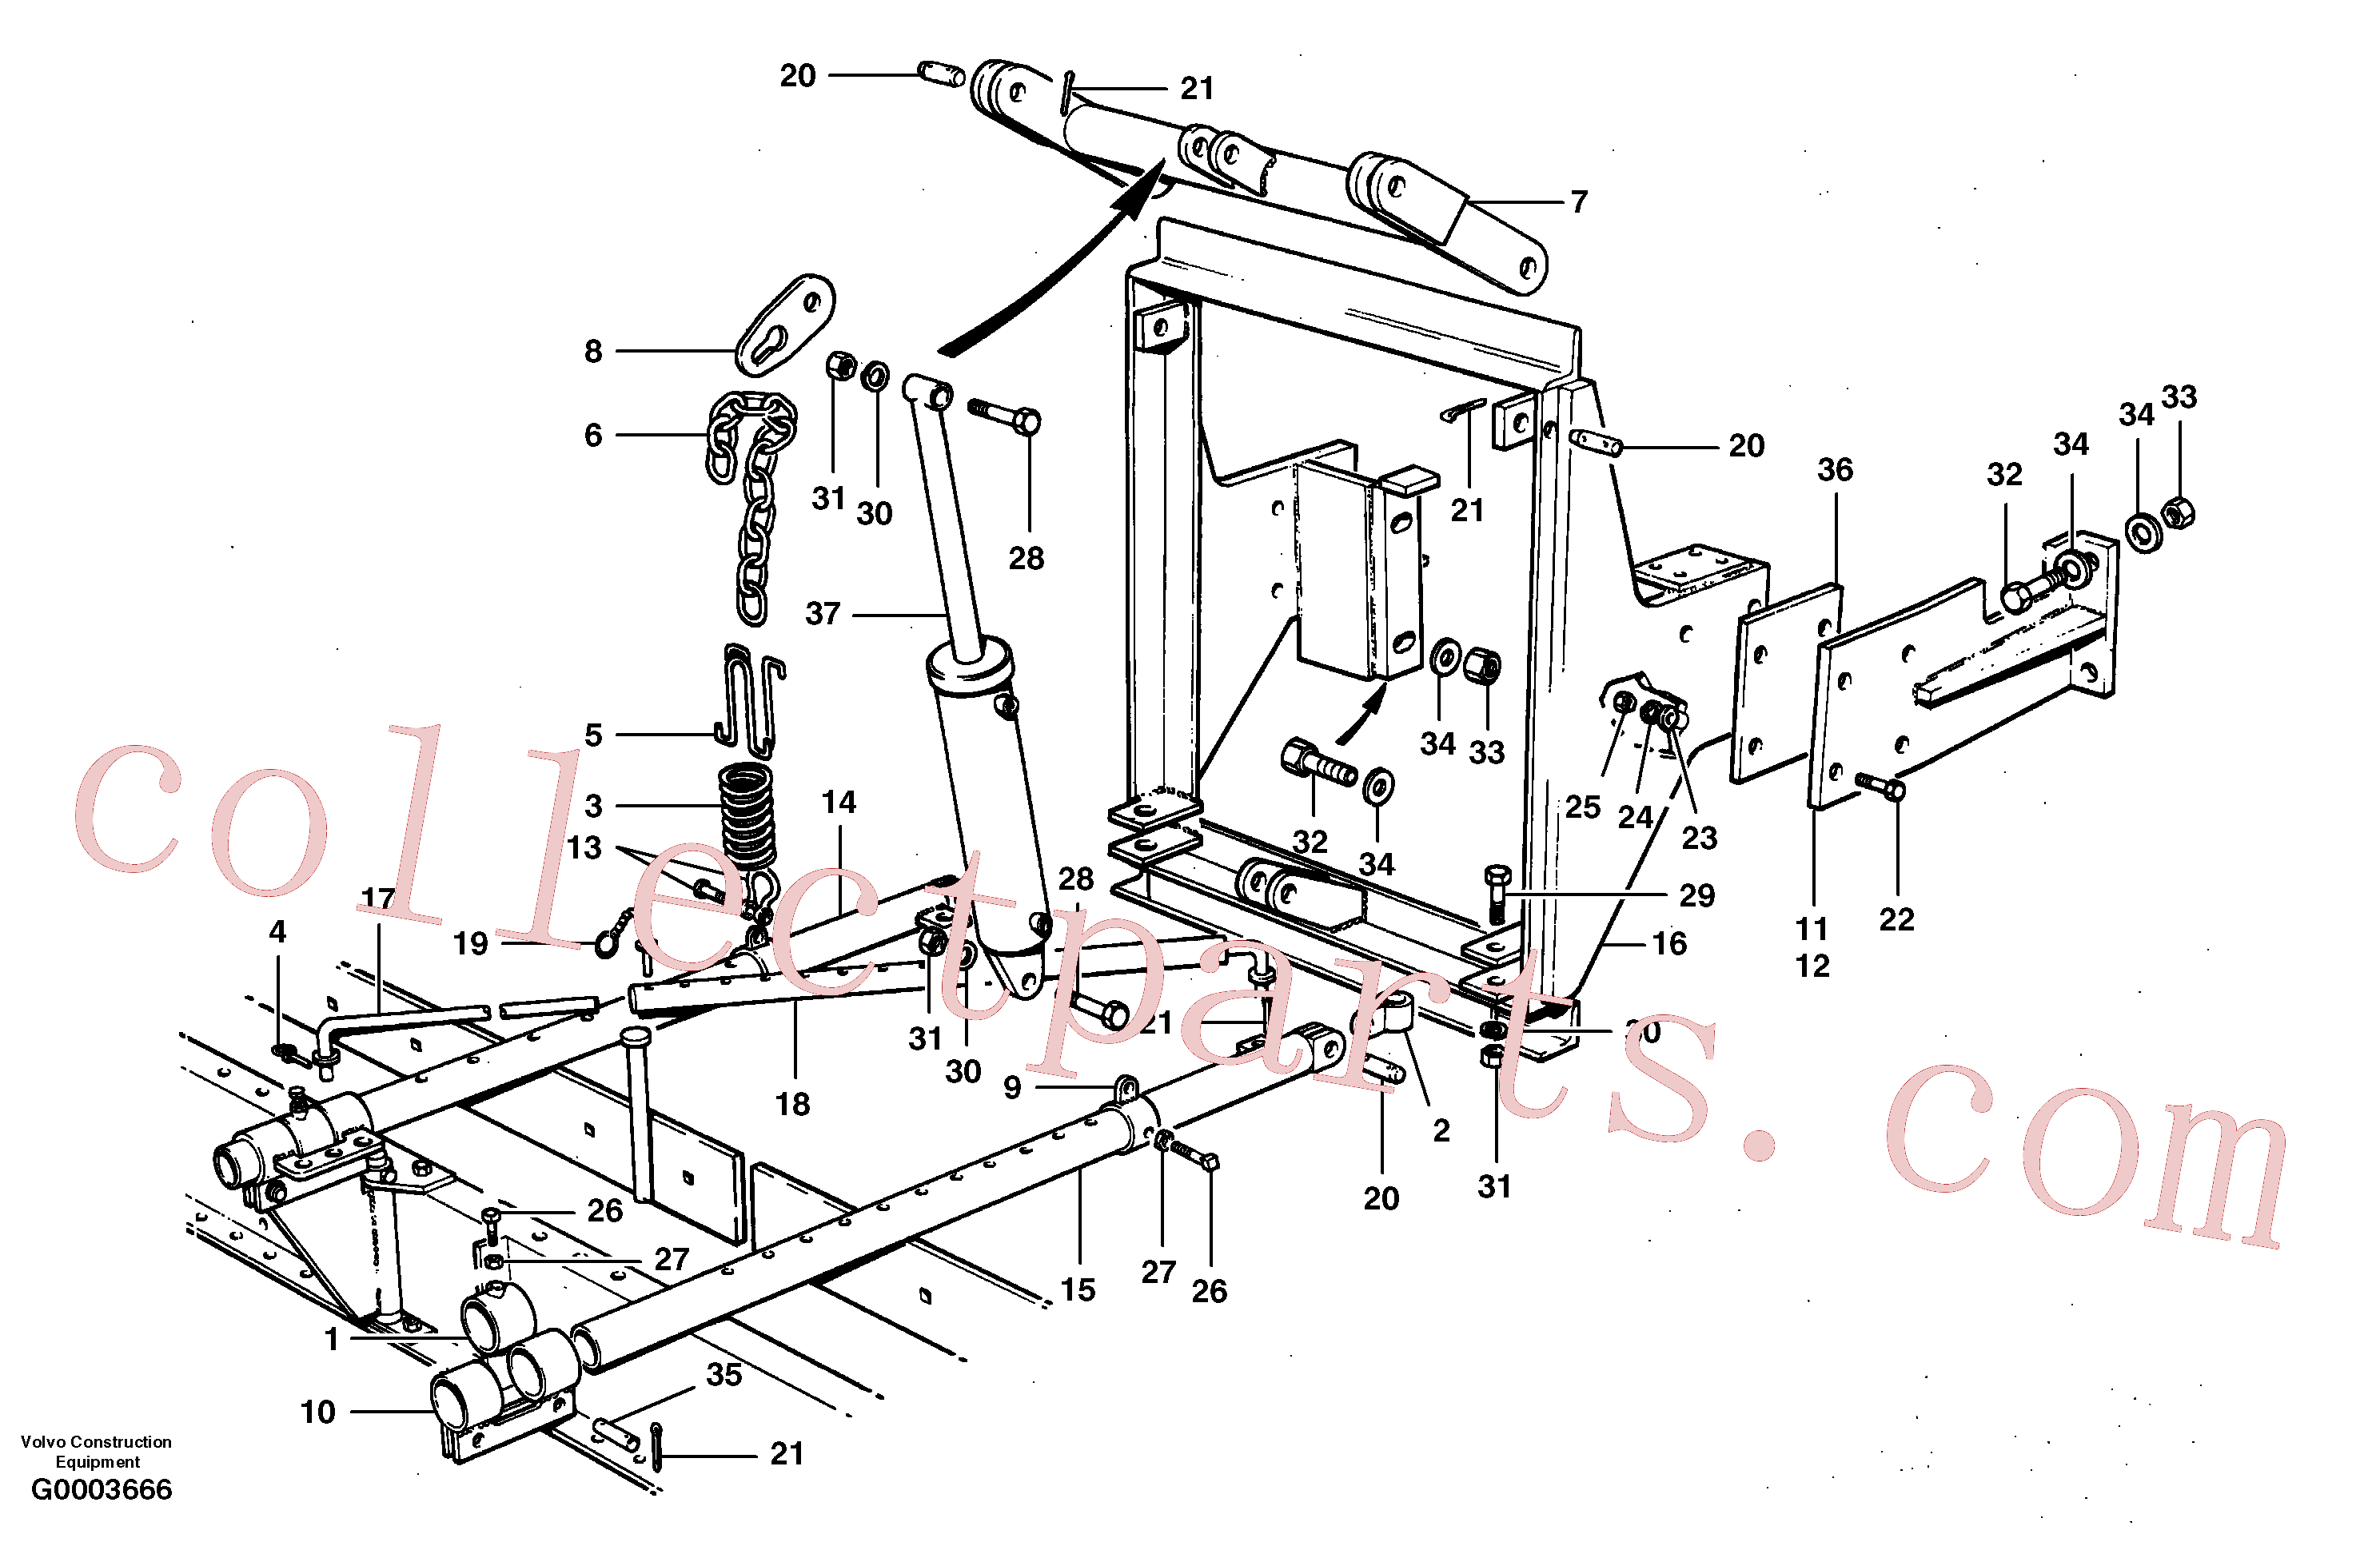 CH22129 for Volvo Windrow eliminator(G0003666 assembly)